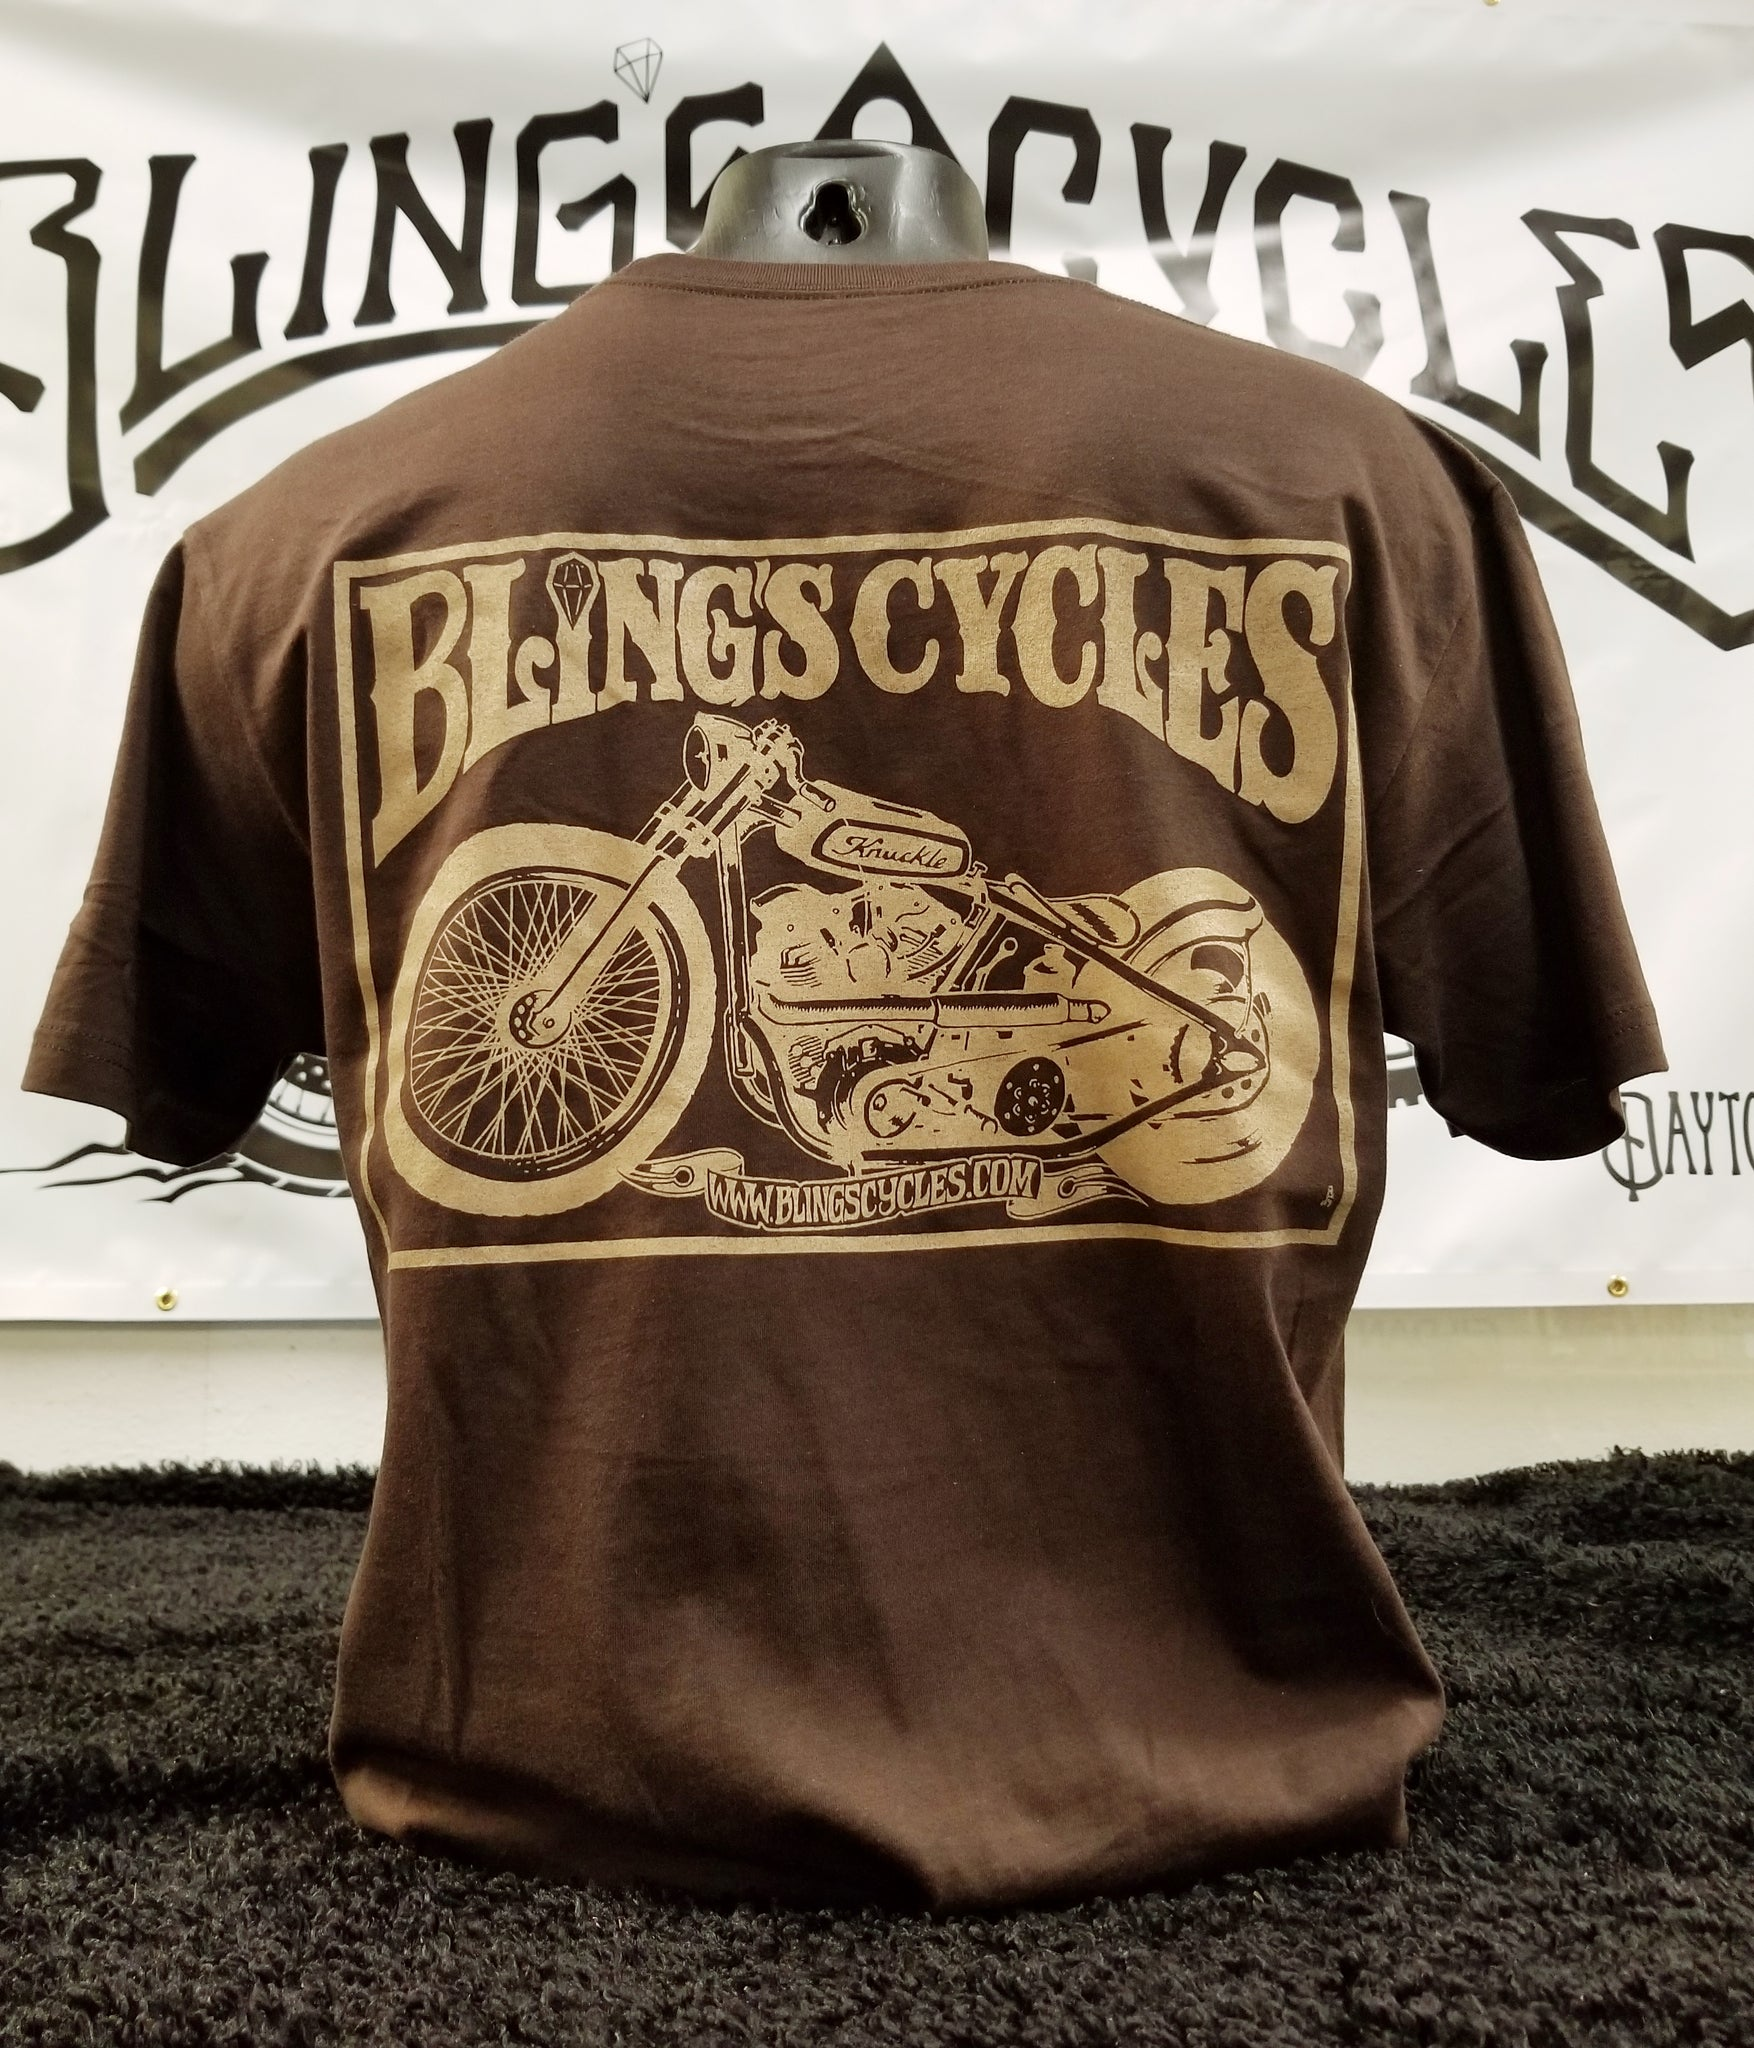 The brown Knuckle Tee